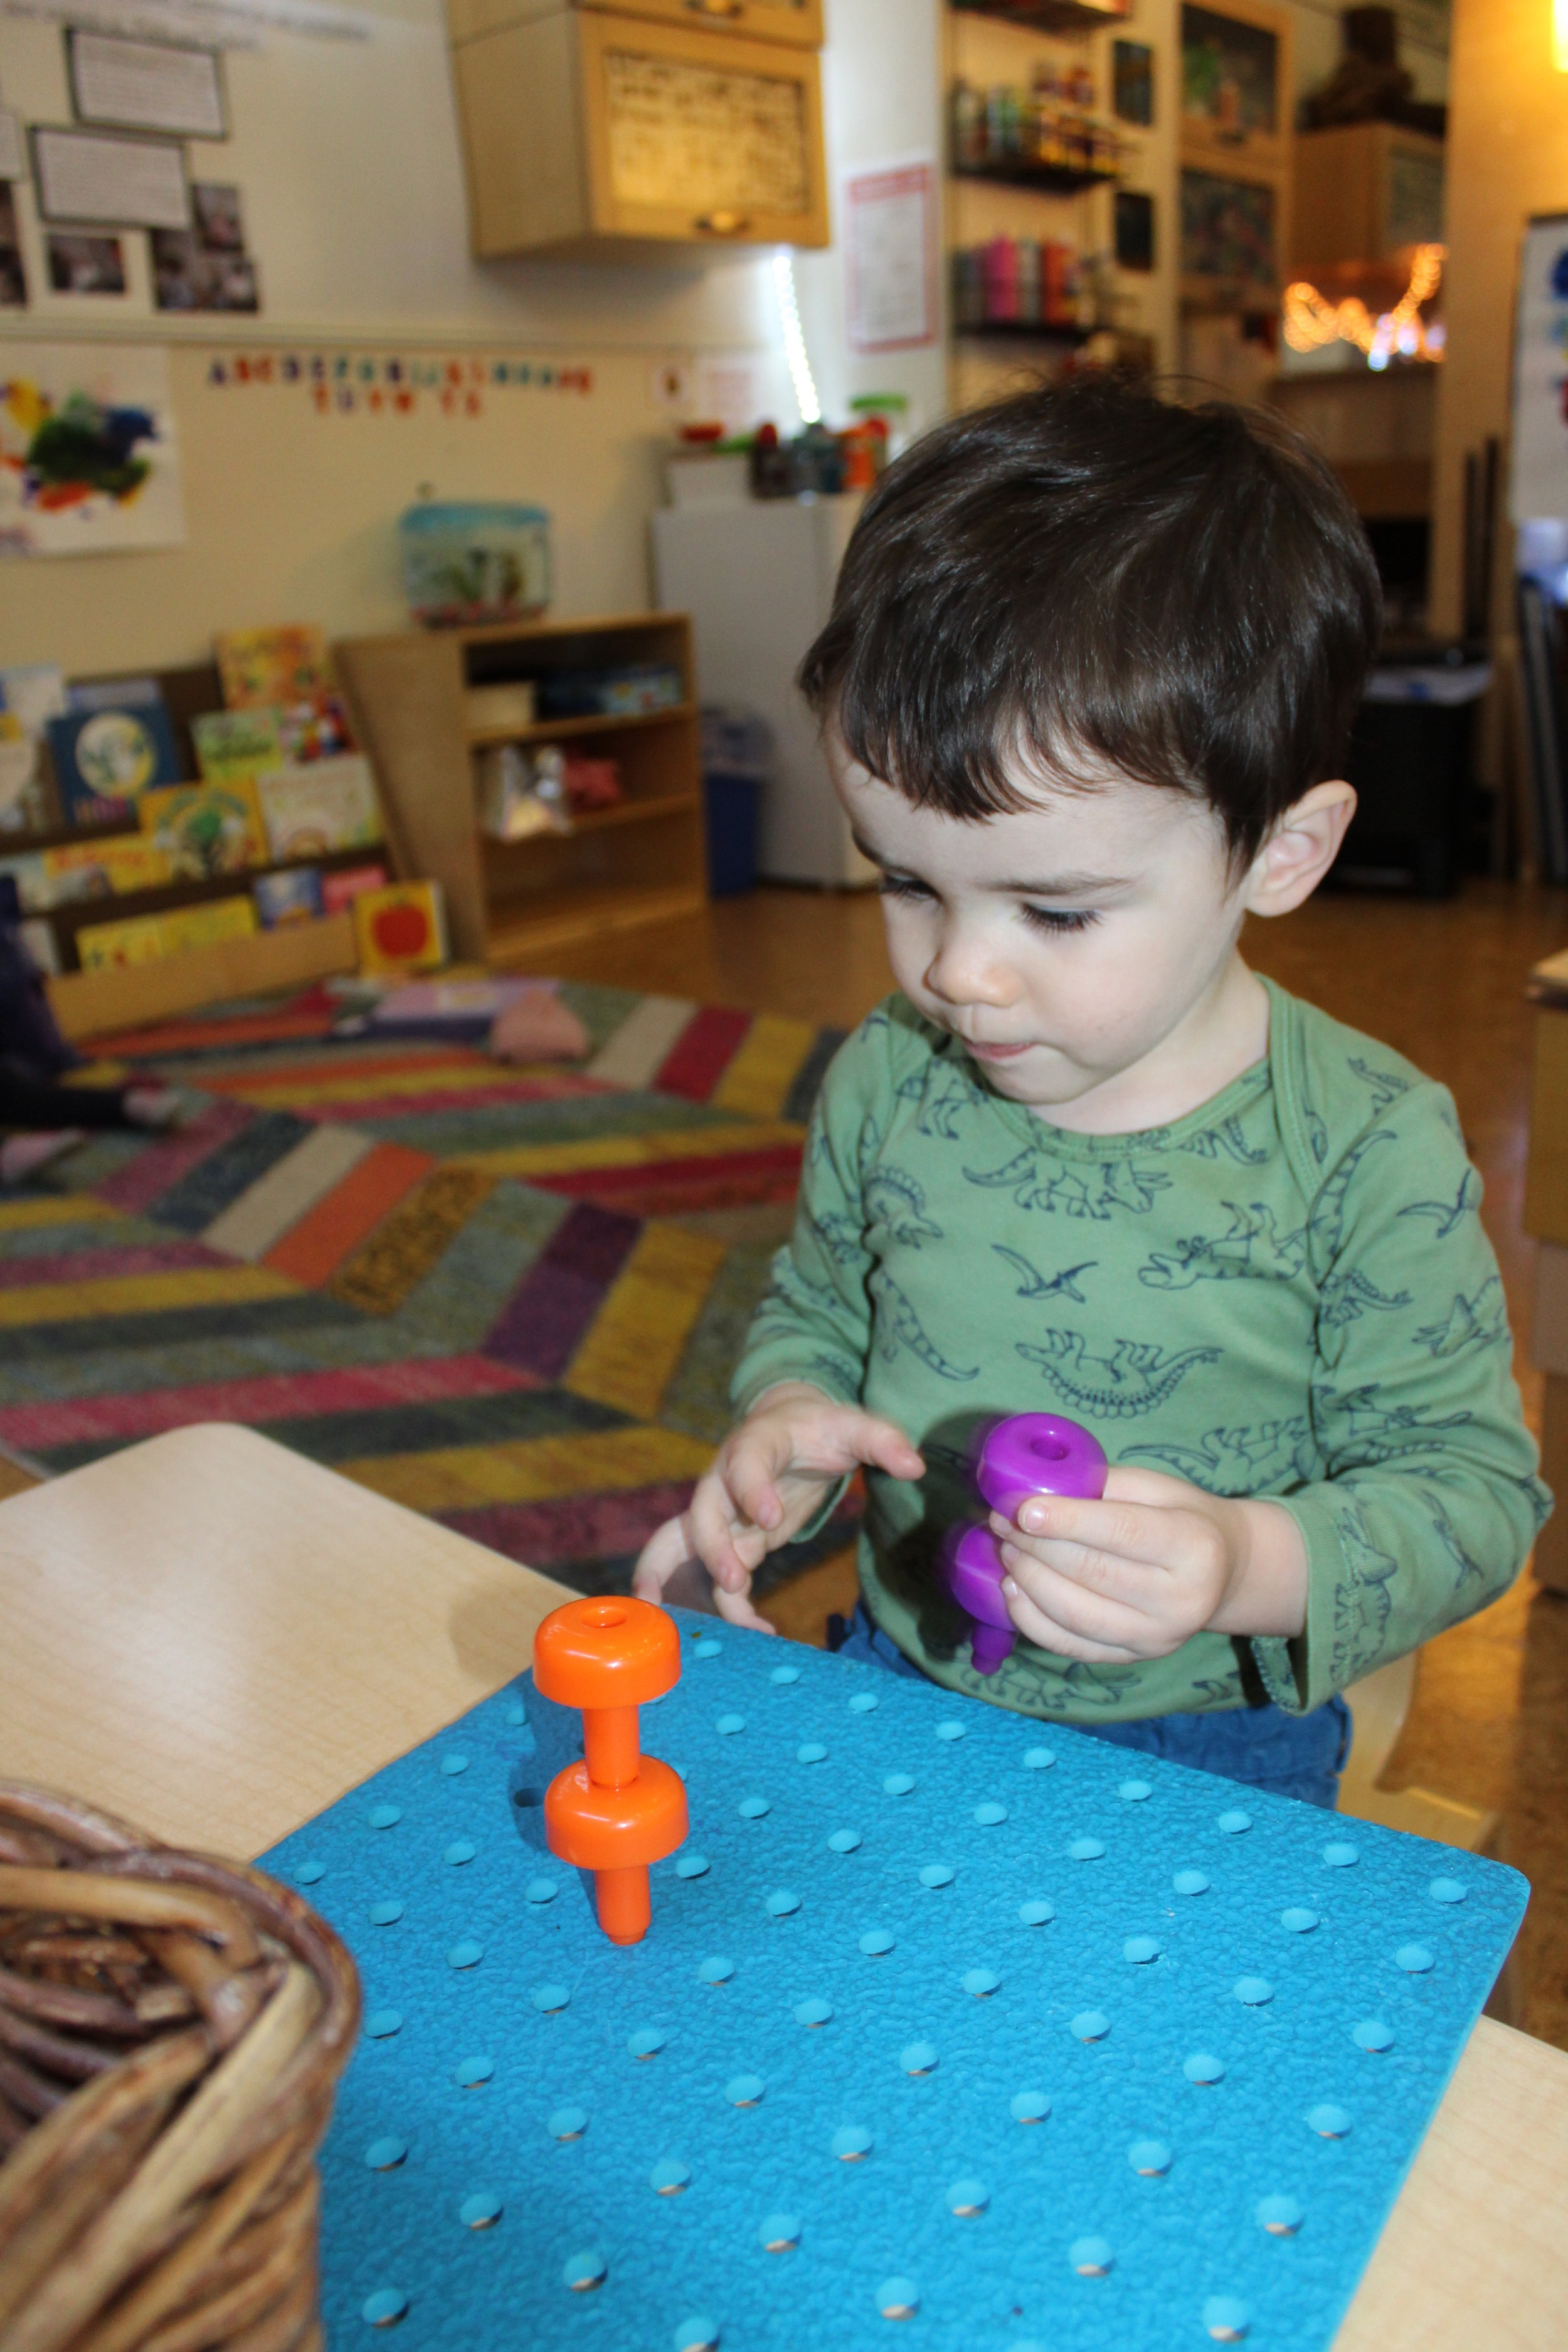 Pegs are sorting, stacking, and color recognition manipulative toy.  They build fine motor skills, develops and strengthens visual perception skills, hand-eye coordination, motor coordination, imagination, and creativity.